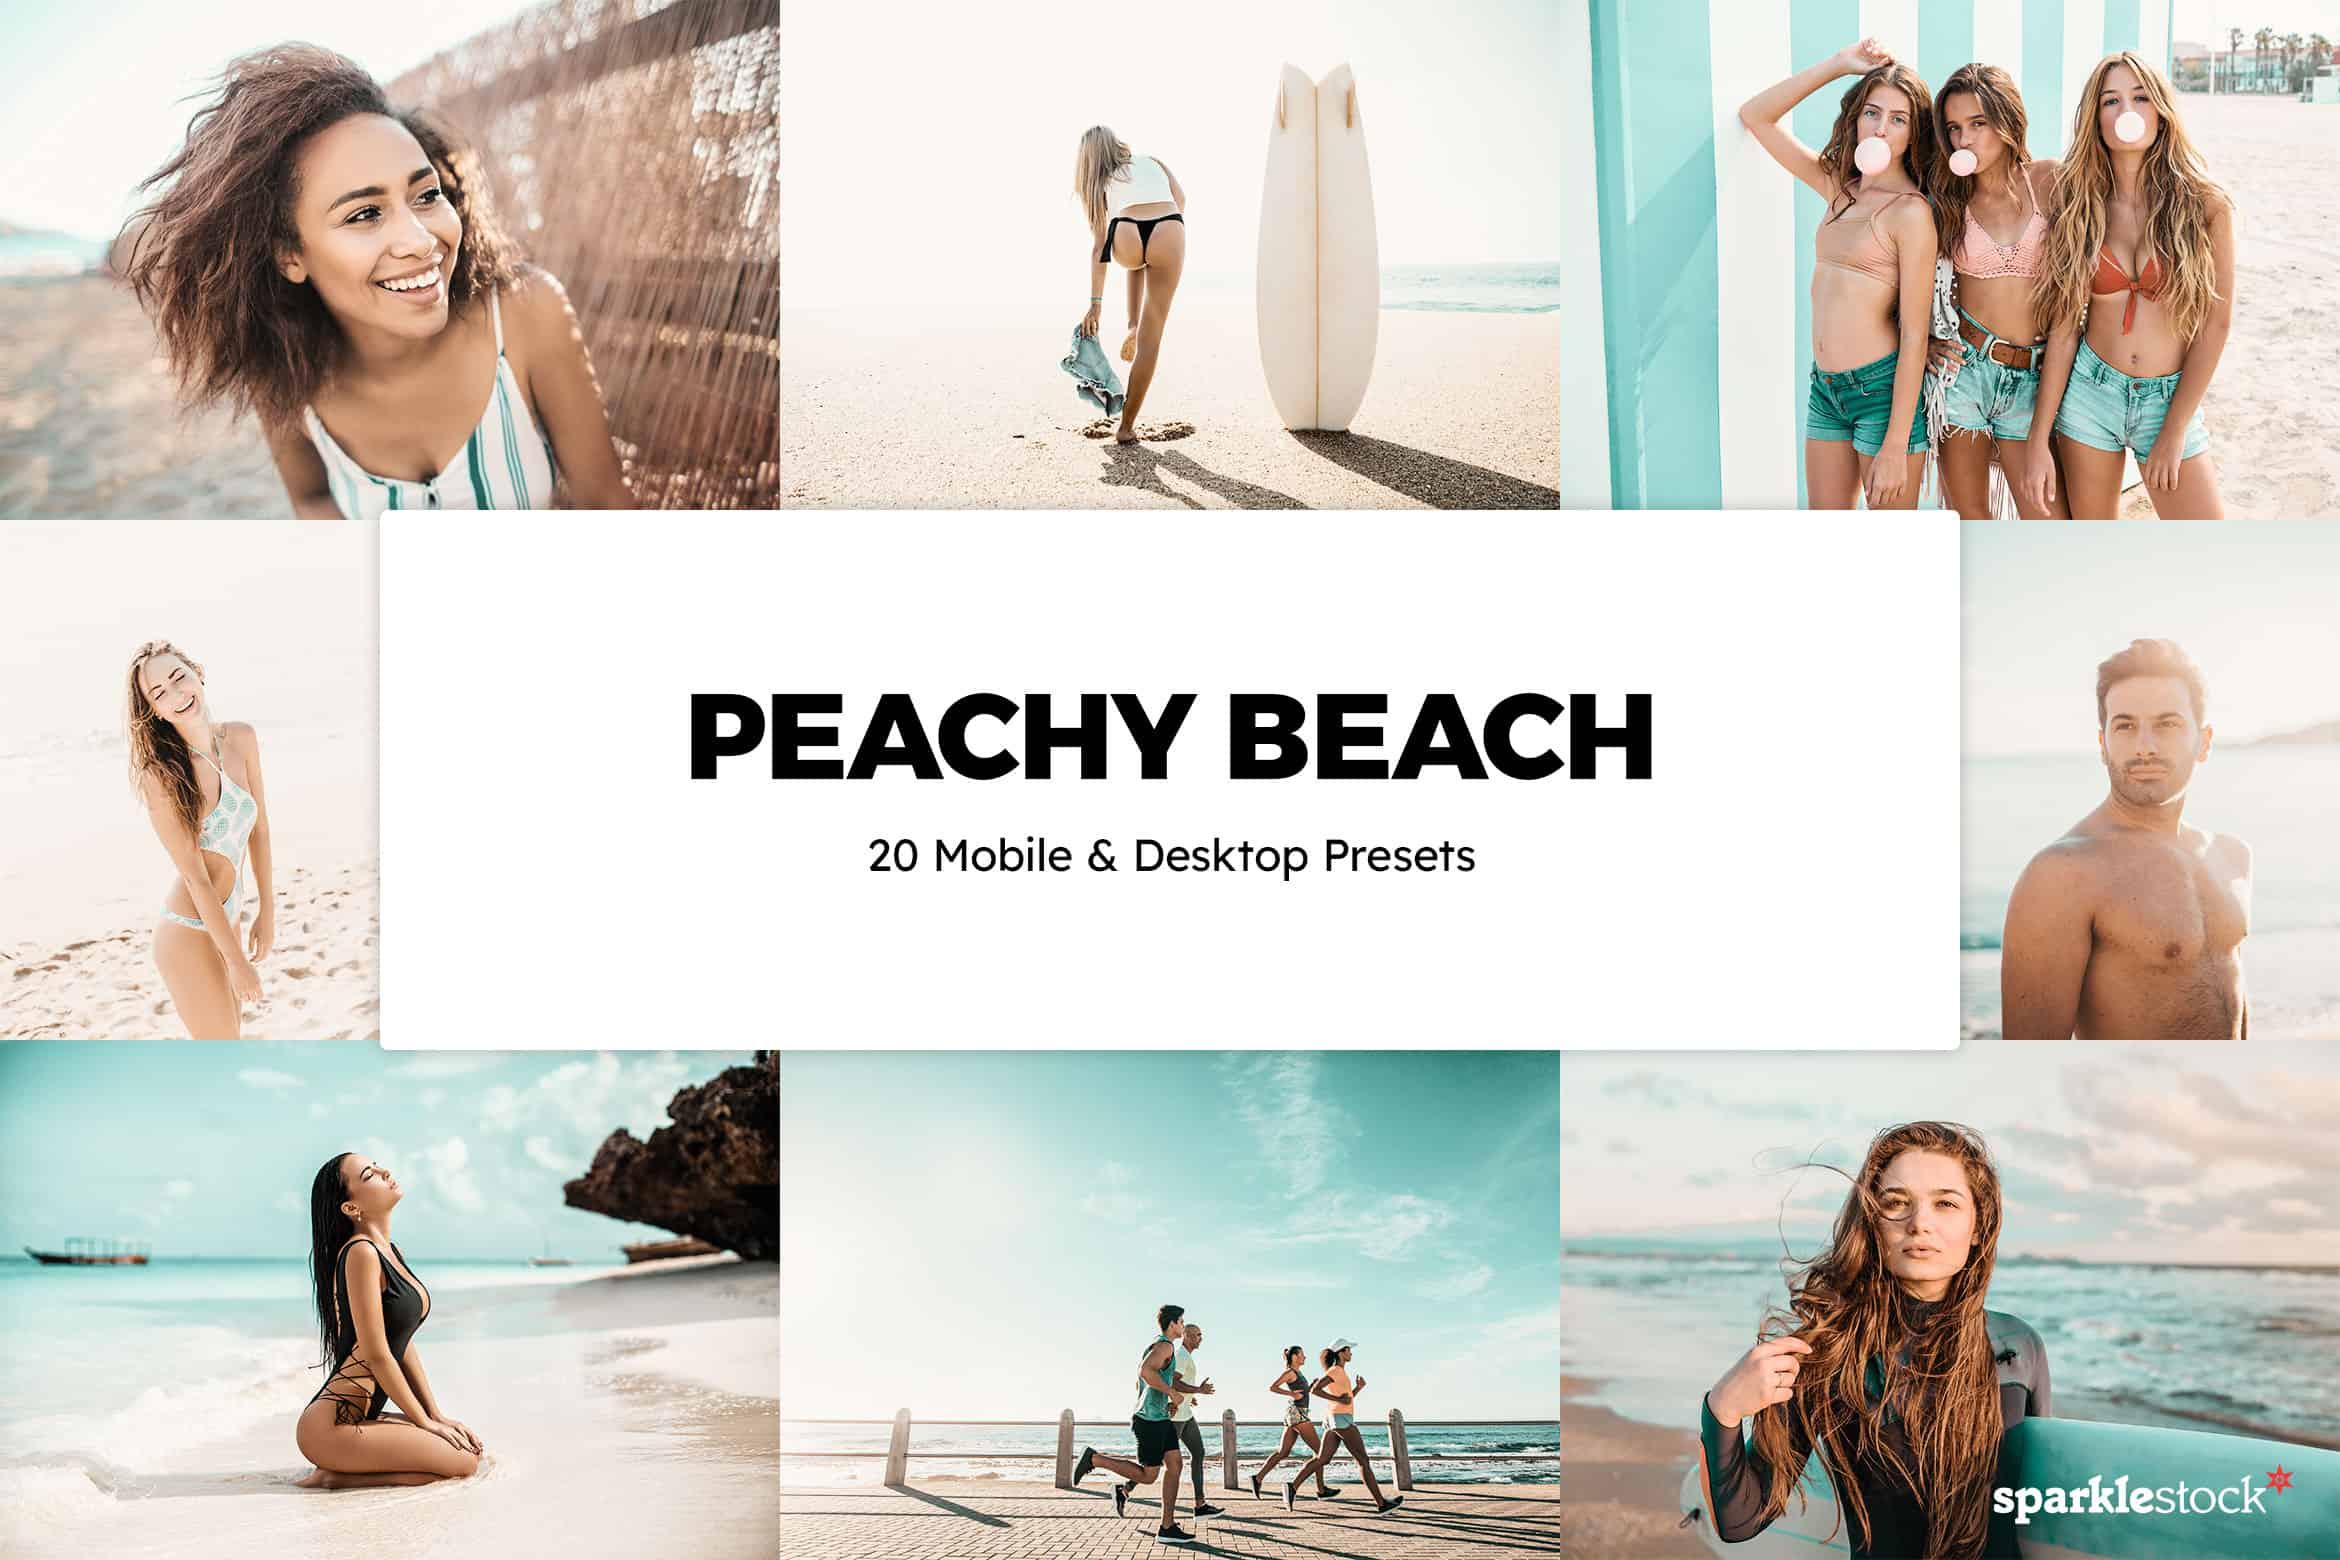 8 Free Peachy Beach Lightroom Presets and LUTs